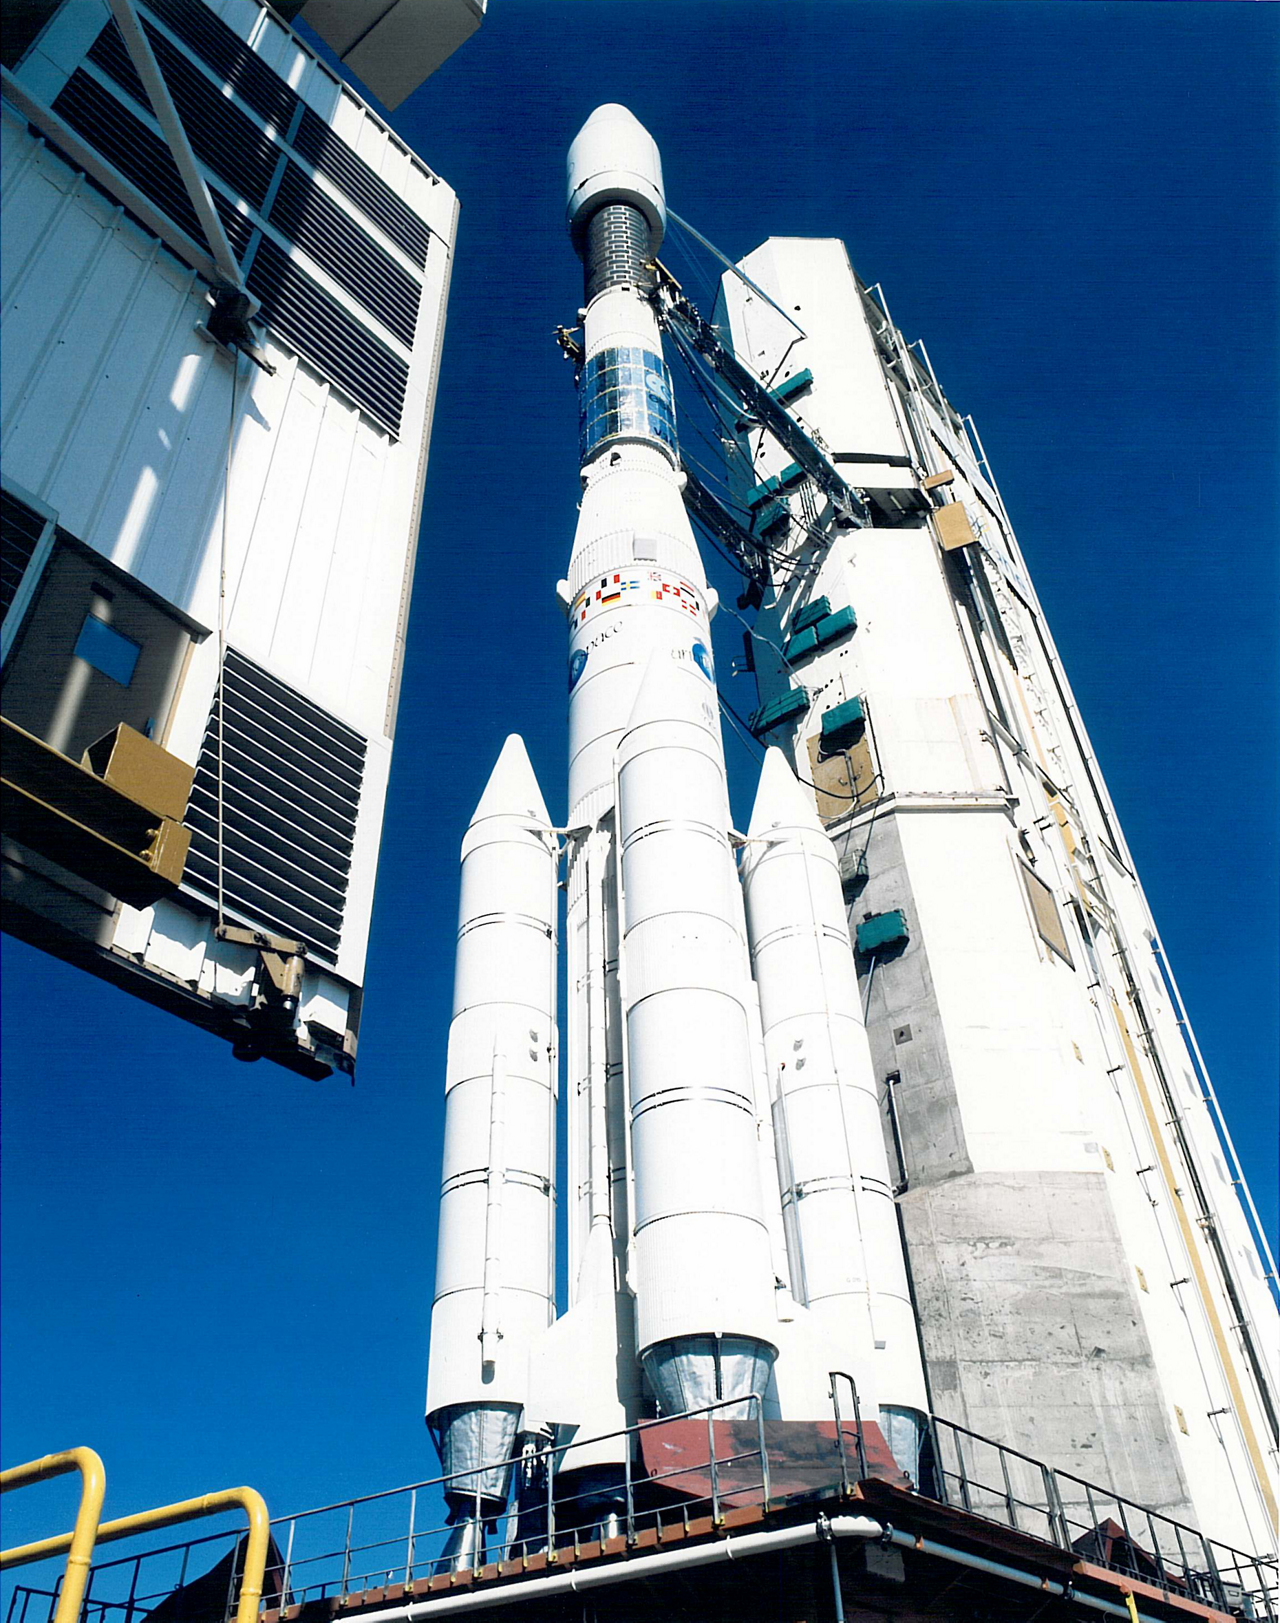 Ariane 4 is poised for its first launch, performed from the Guiana Space Centre in 1988.